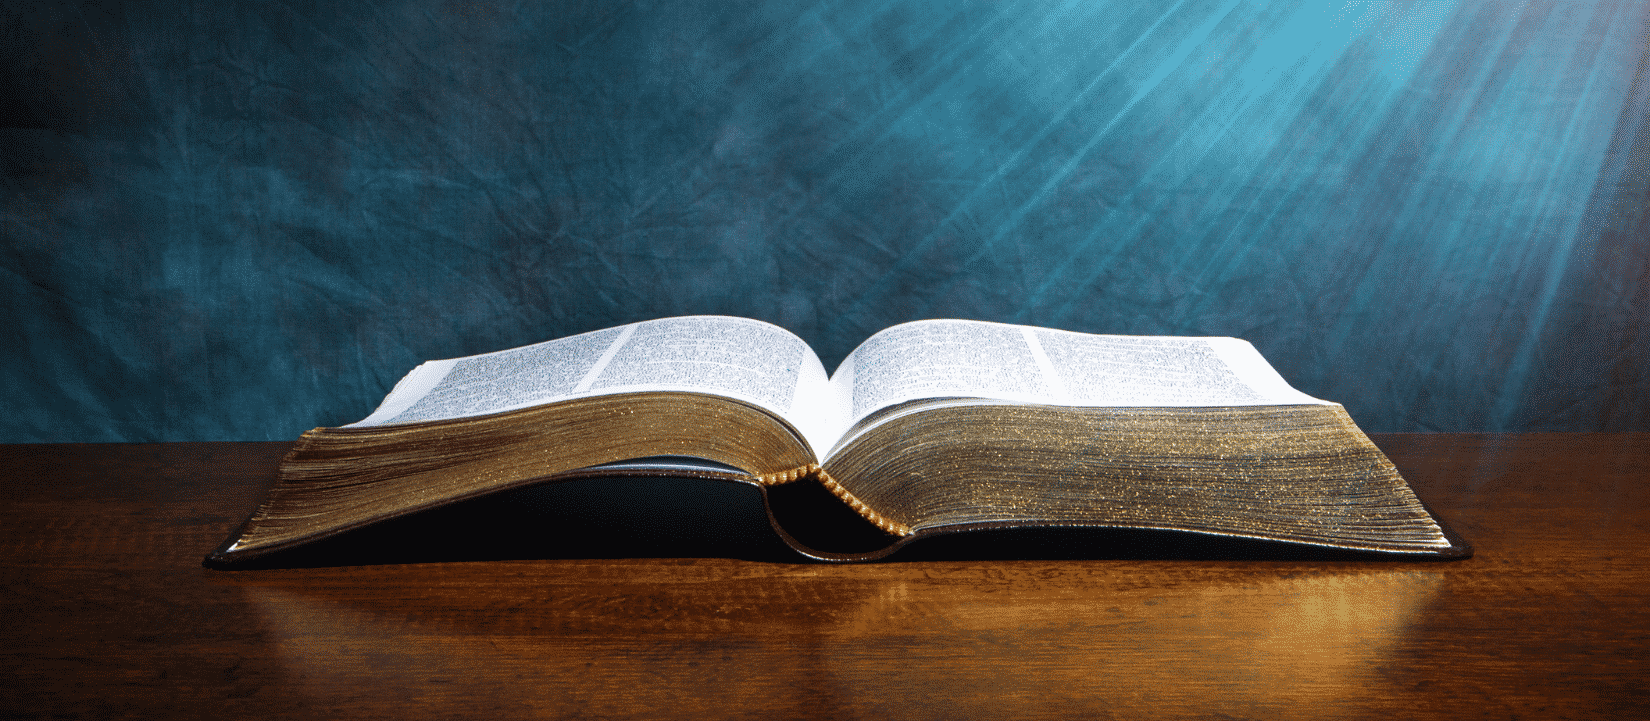 4 Scriptures To Overcome Fear